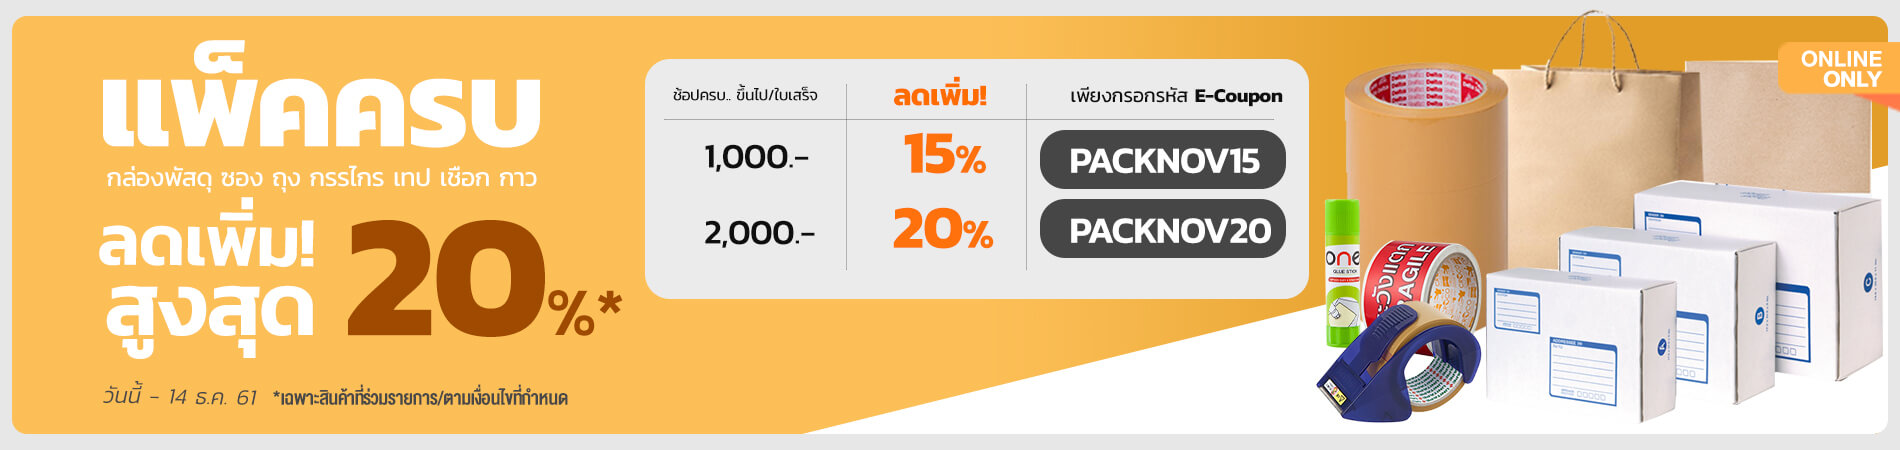 Online Exclusive SME Packing 1Nov -14Dec 18